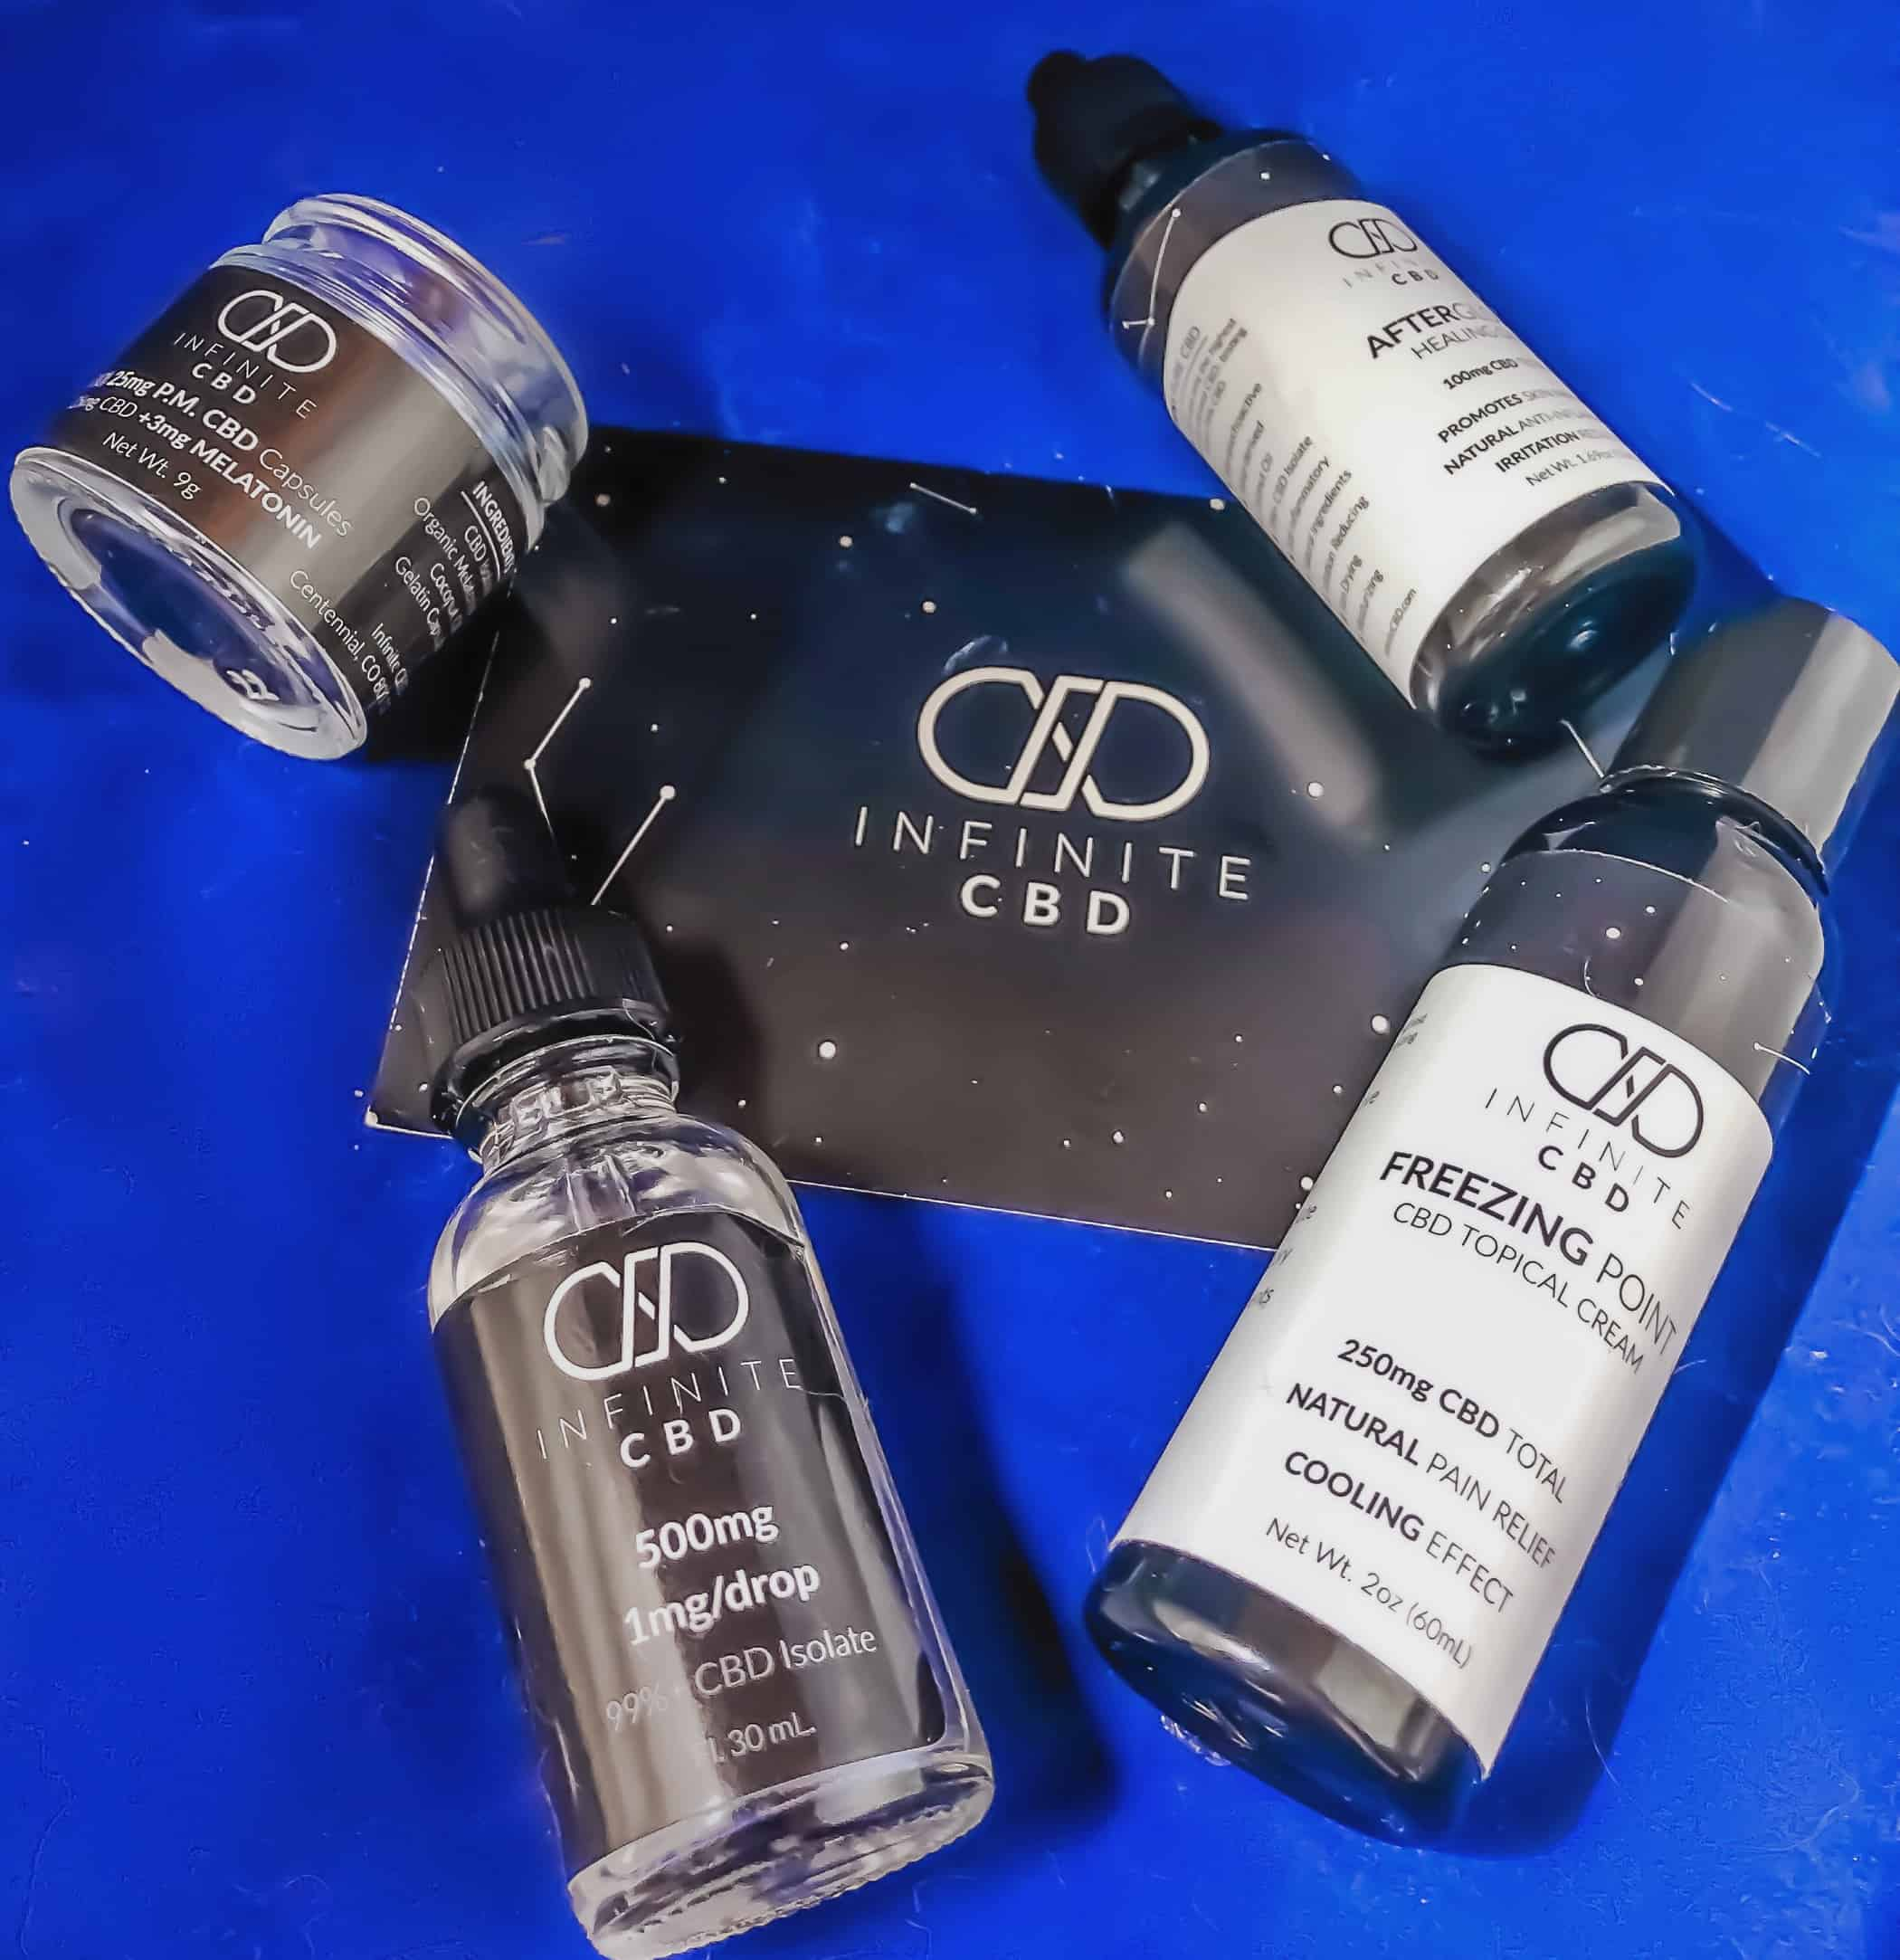 Infinite CBD products against a blue backdrop.